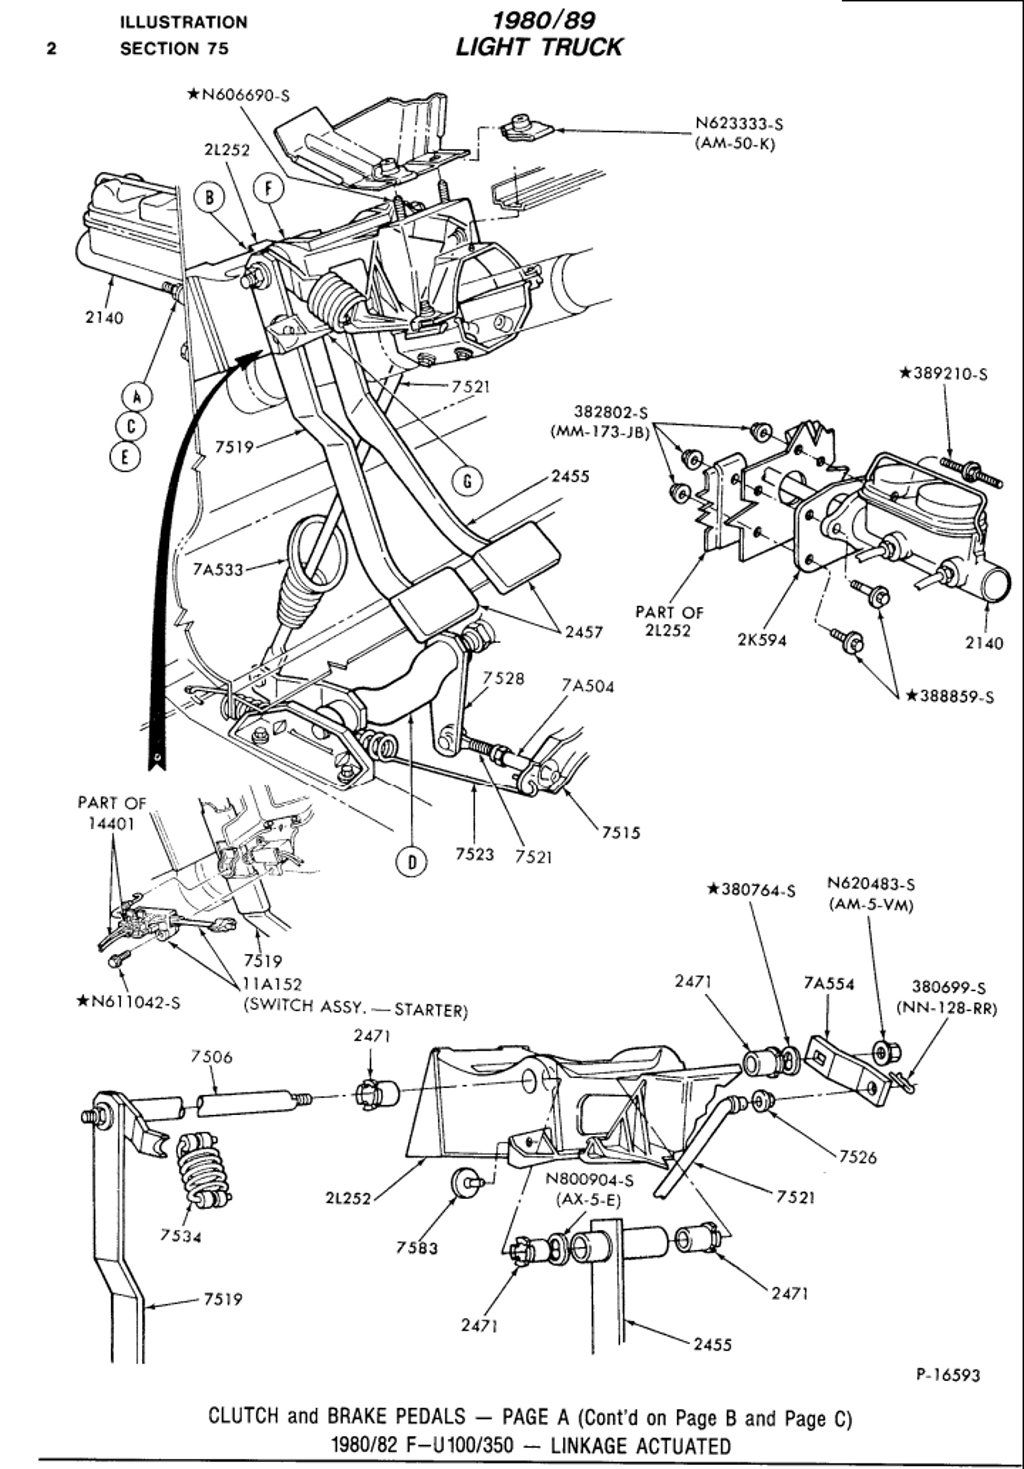 Squeaky Clutch Pedal